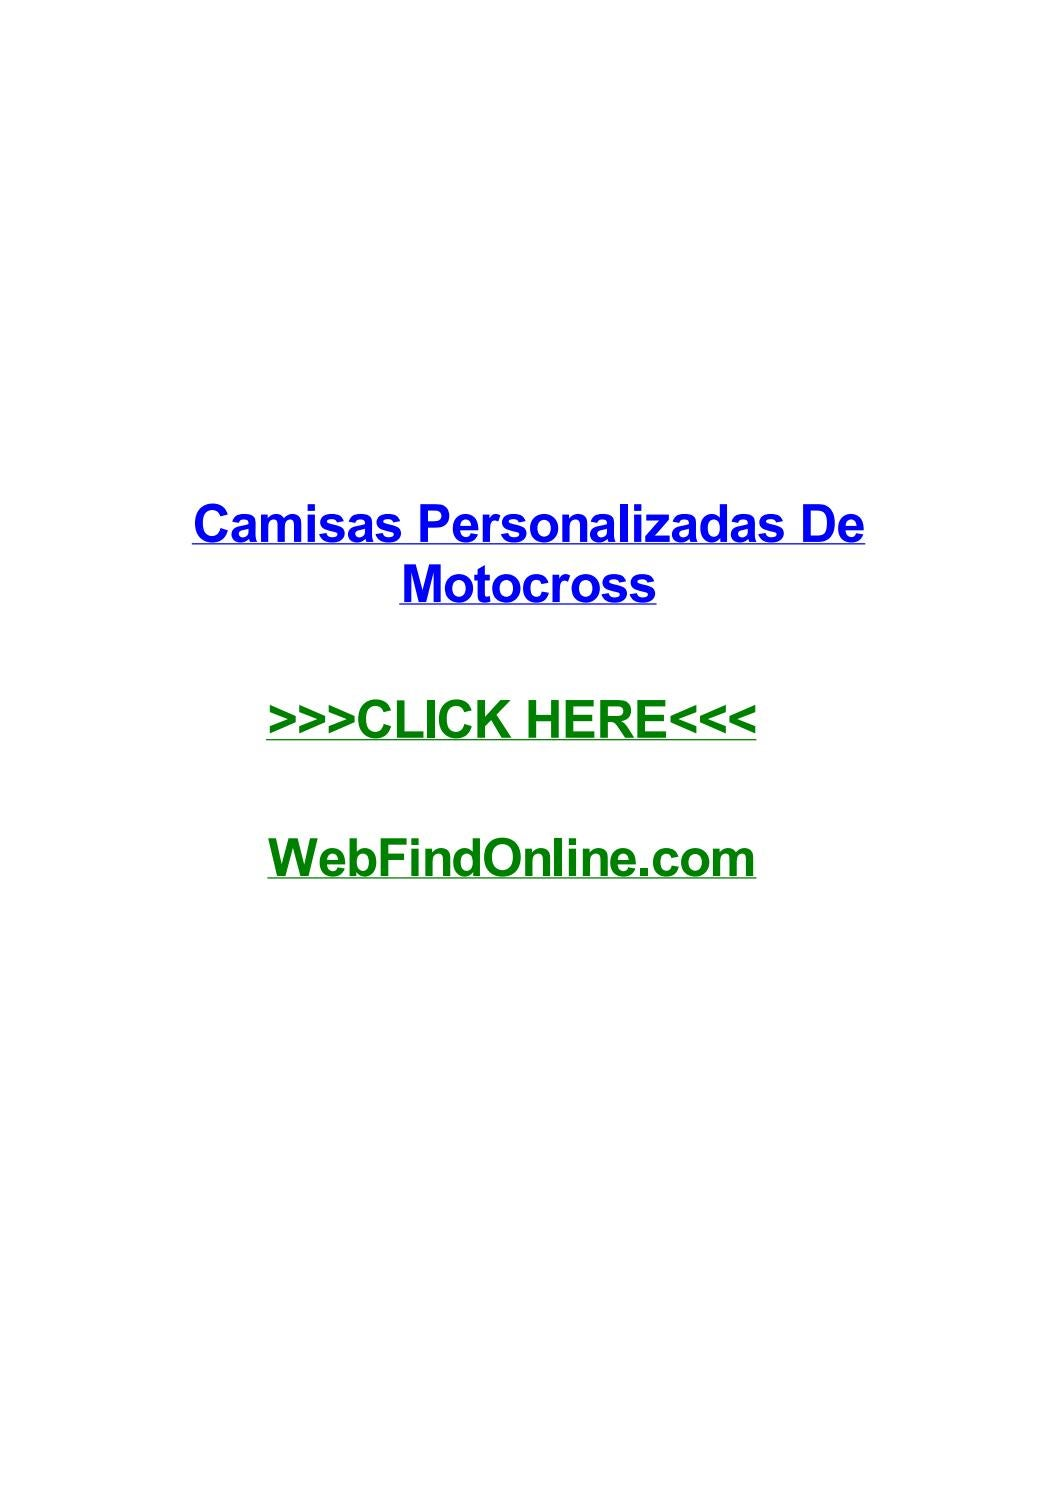 Camisas personalizadas de motocross by juannuofp issuu fandeluxe Choice Image